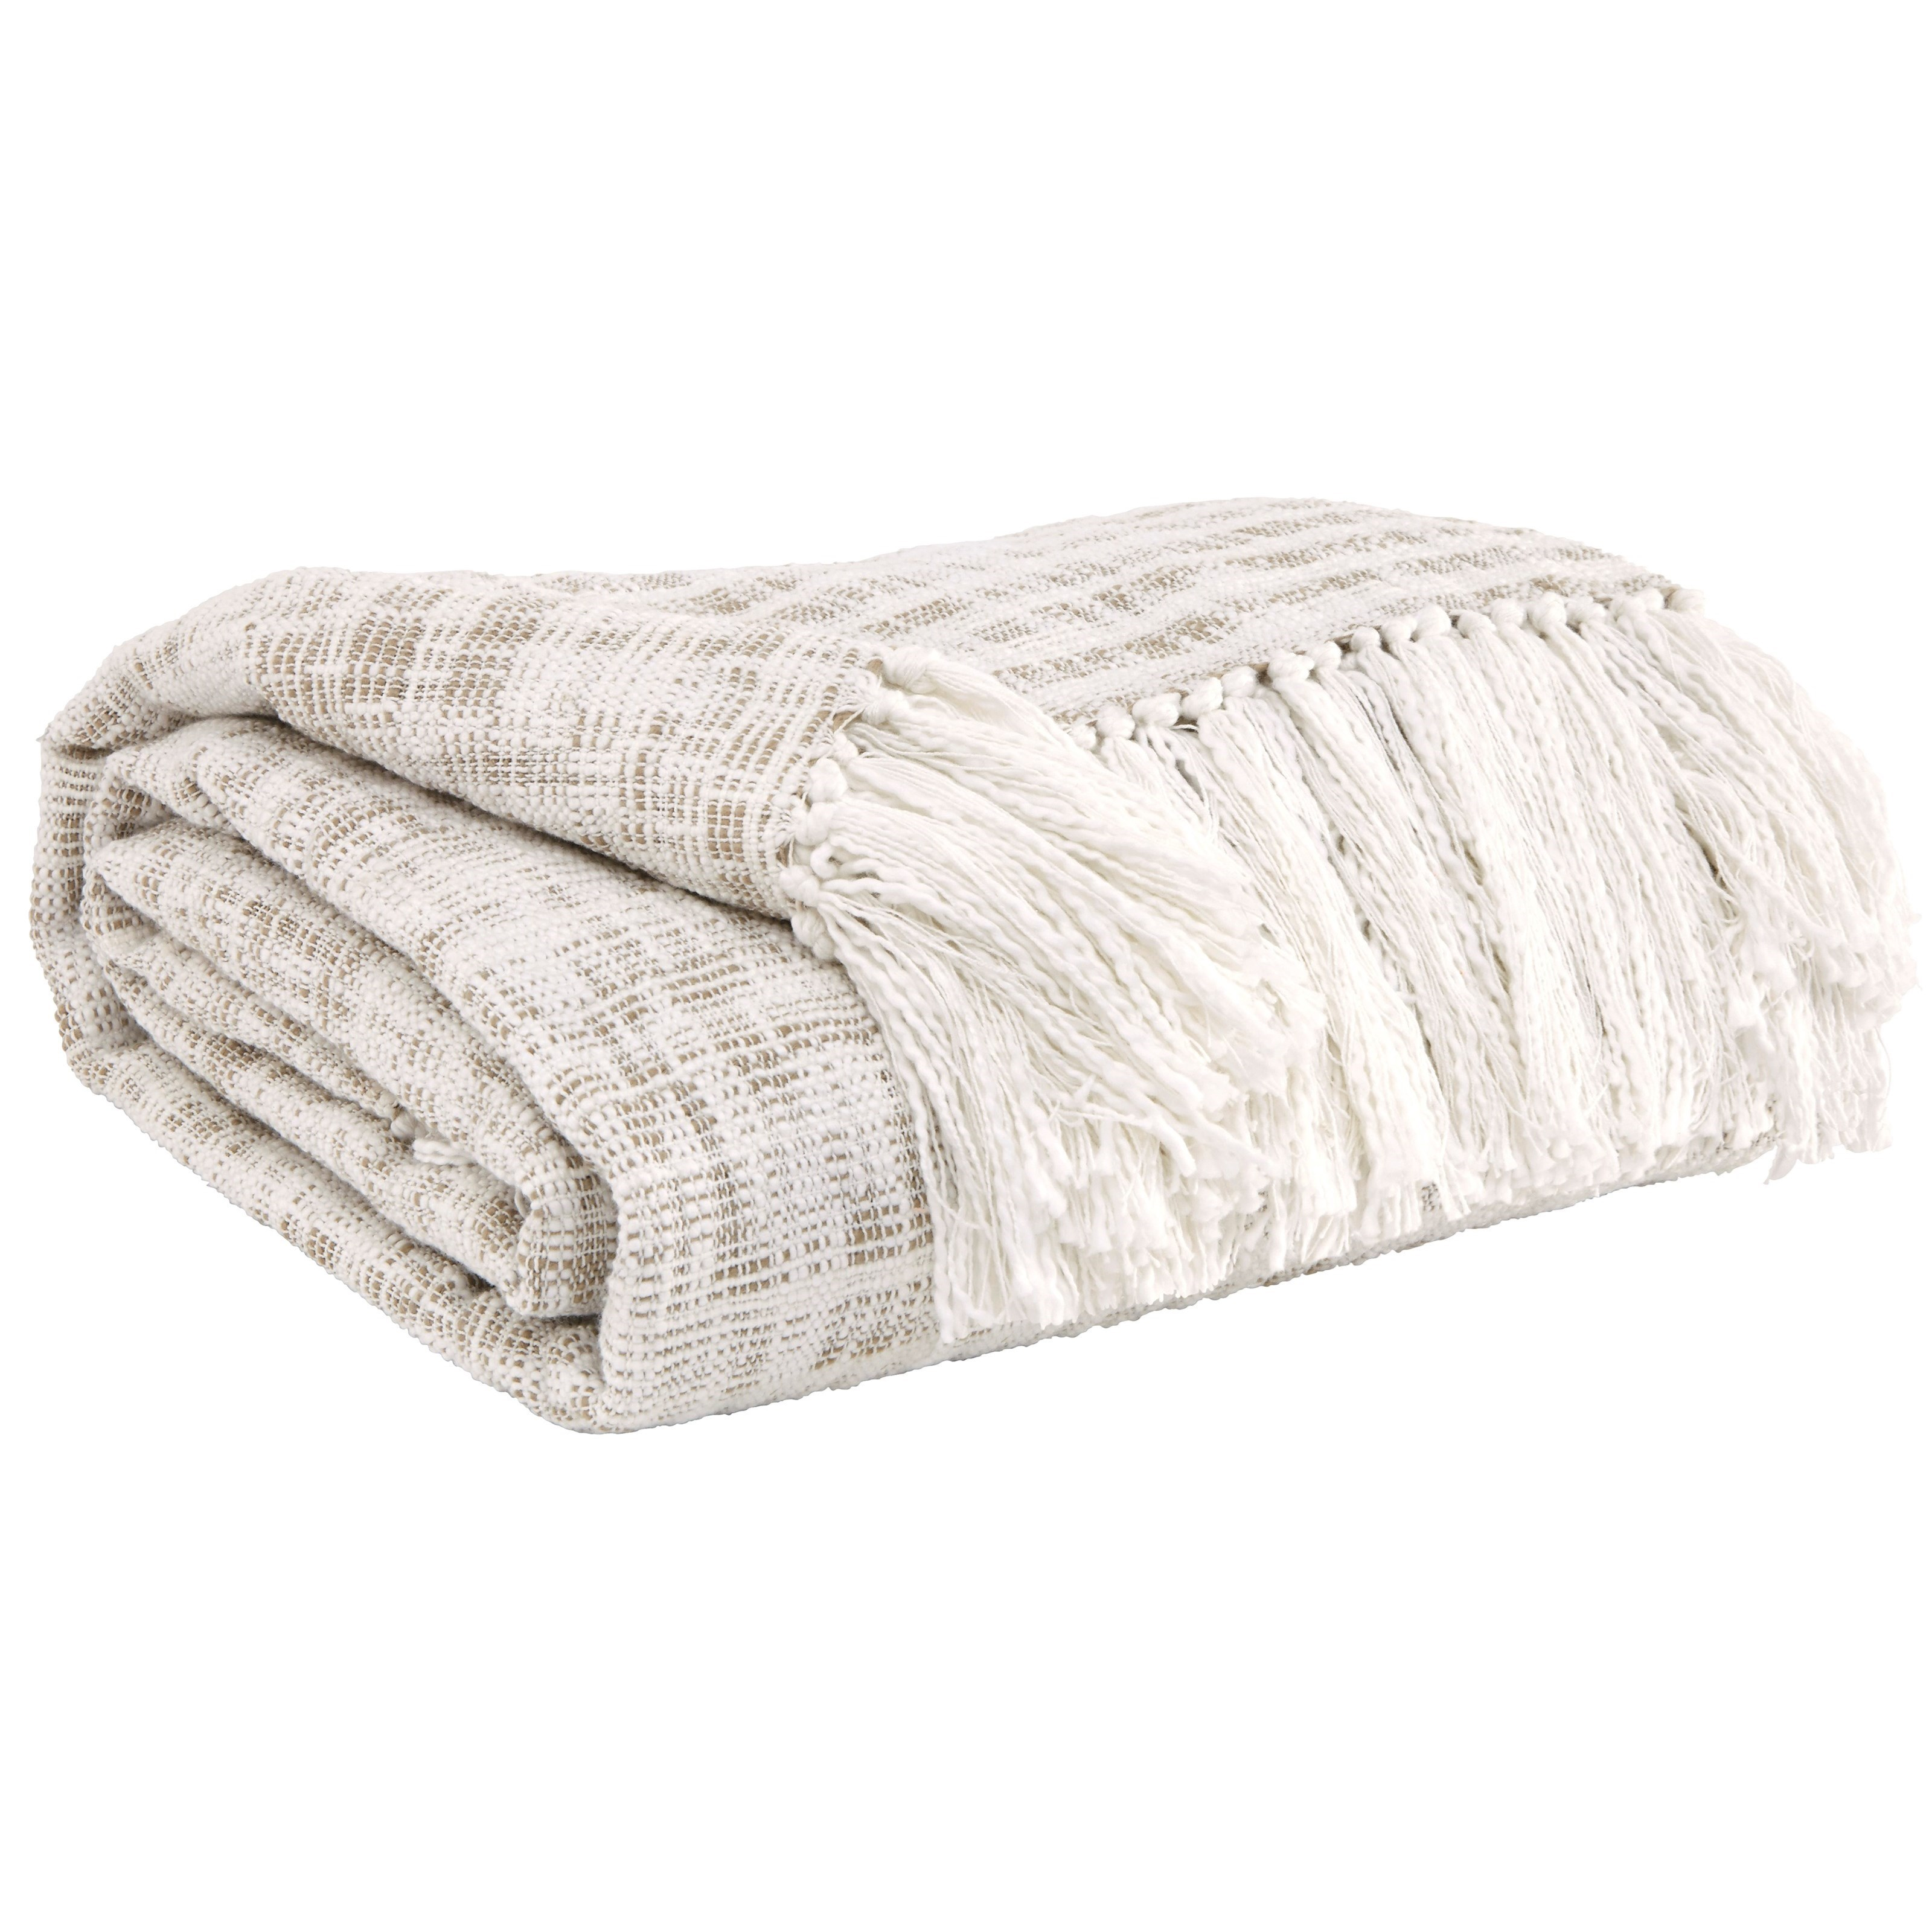 Signature Design by Ashley Throws Cassbab - Beige Throw - Item Number: A1000082T